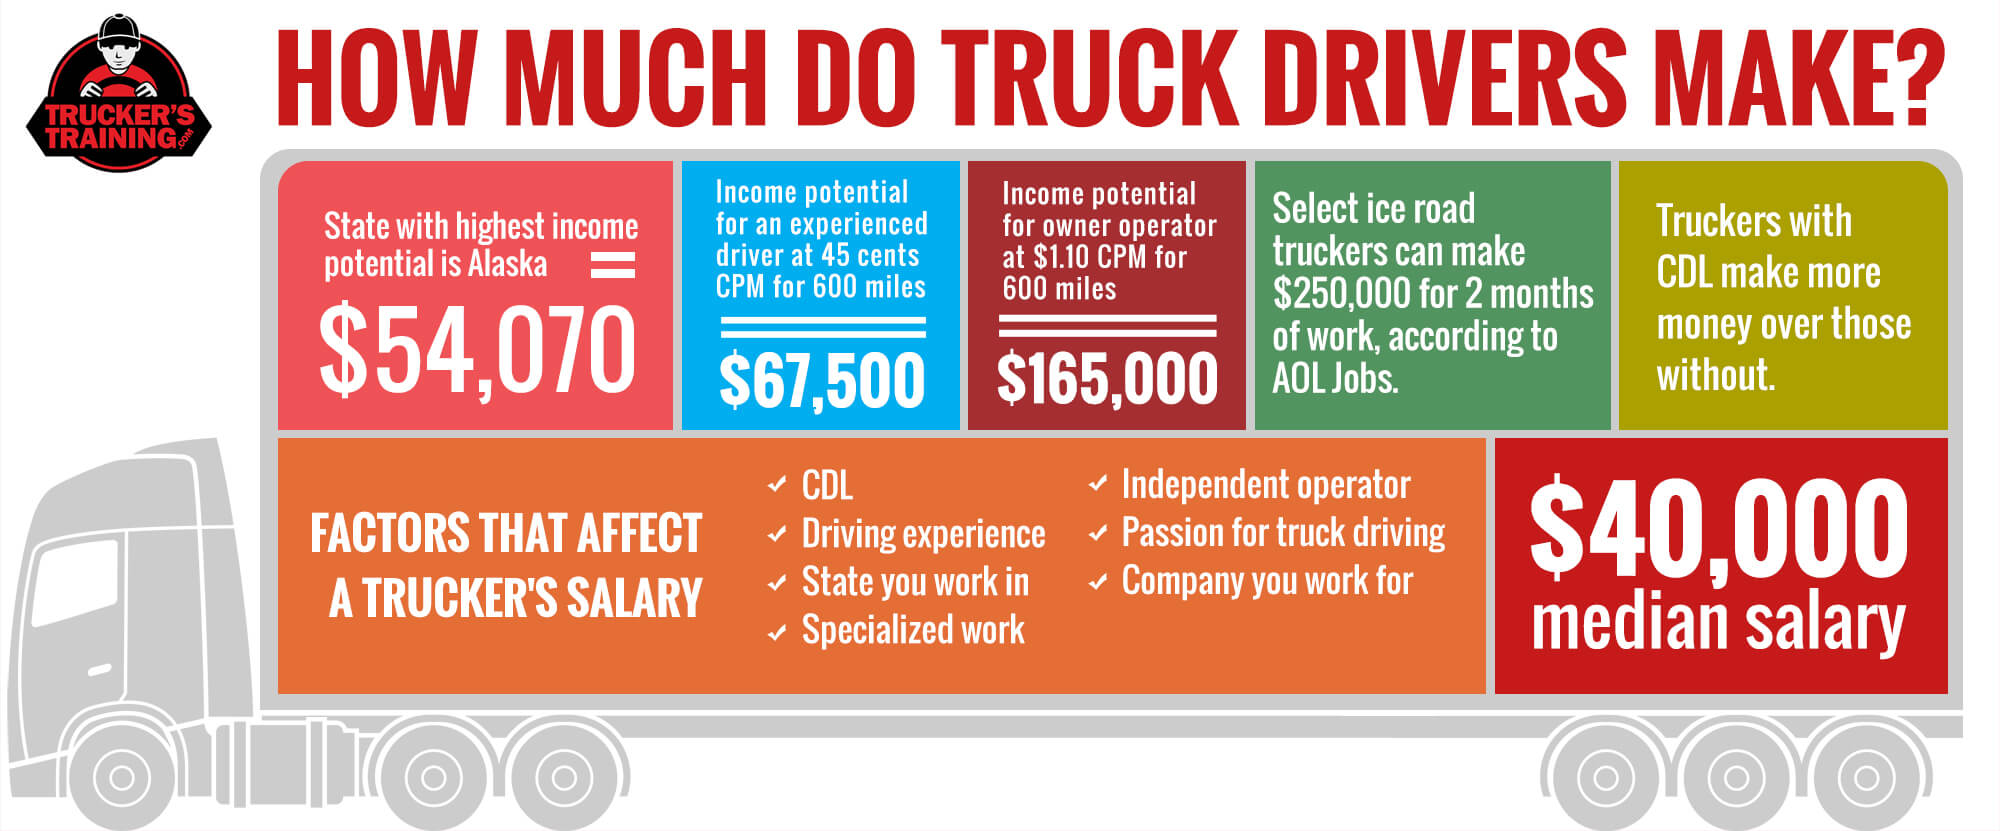 Can a Trucker Earn Over $100K? - TruckersTraining